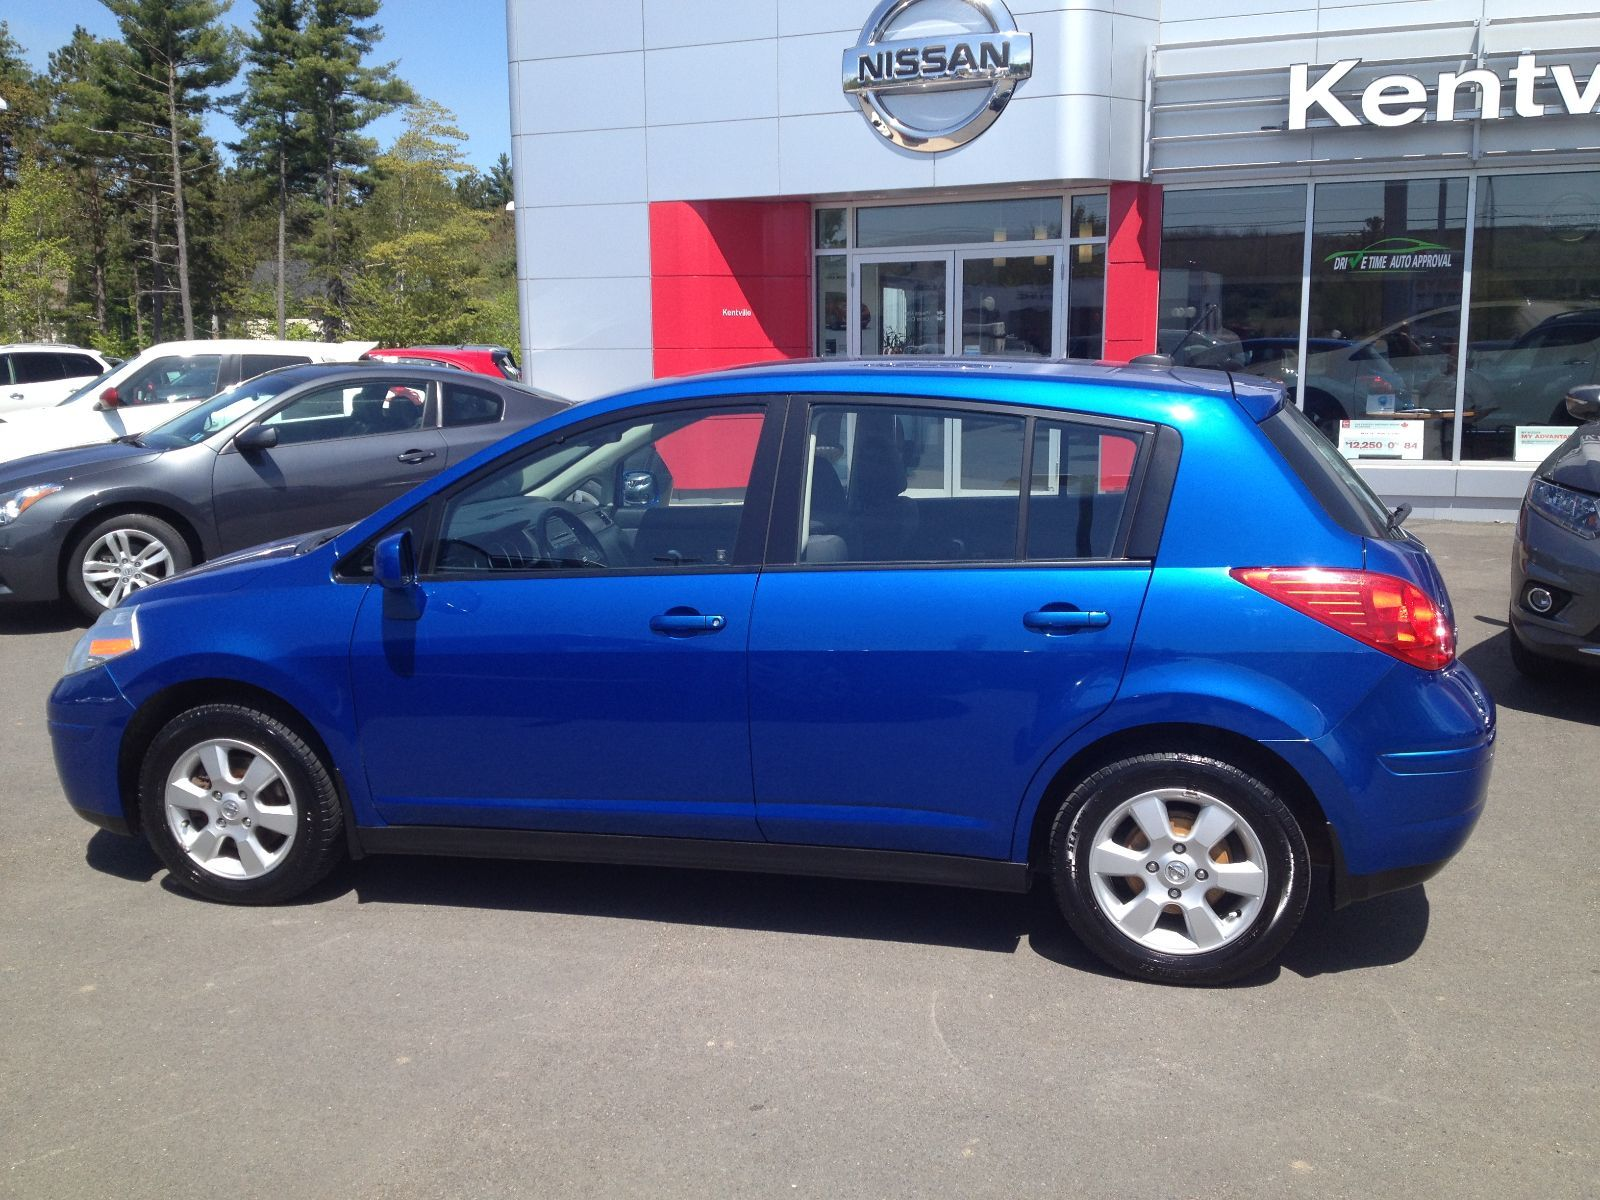 used 2008 nissan versa 1 8 sl in new germany used inventory lake view auto in new germany. Black Bedroom Furniture Sets. Home Design Ideas